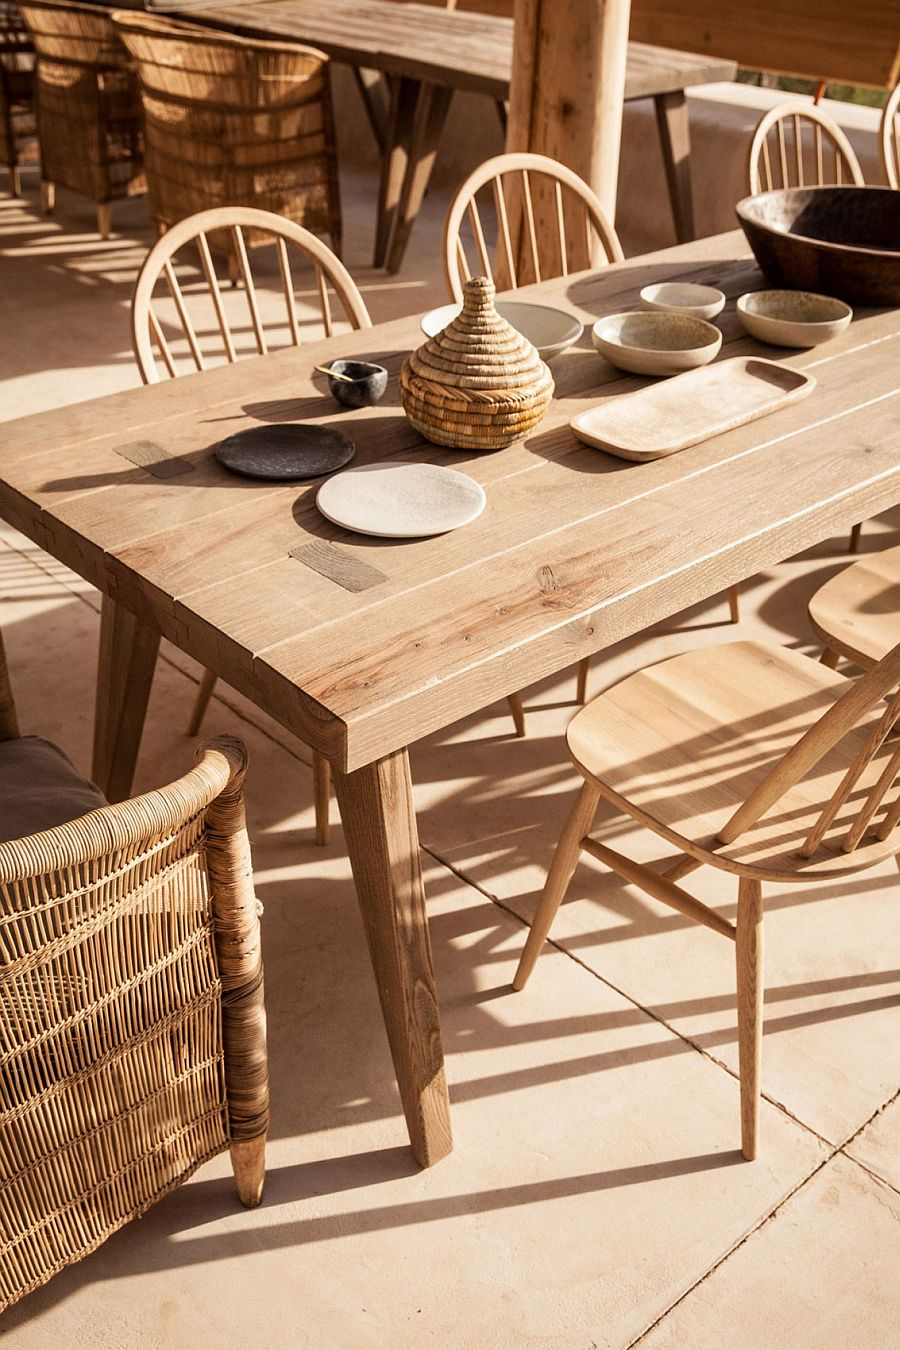 Rustic and laidback appeal of Scorpios is enhanced by its tasteful decor